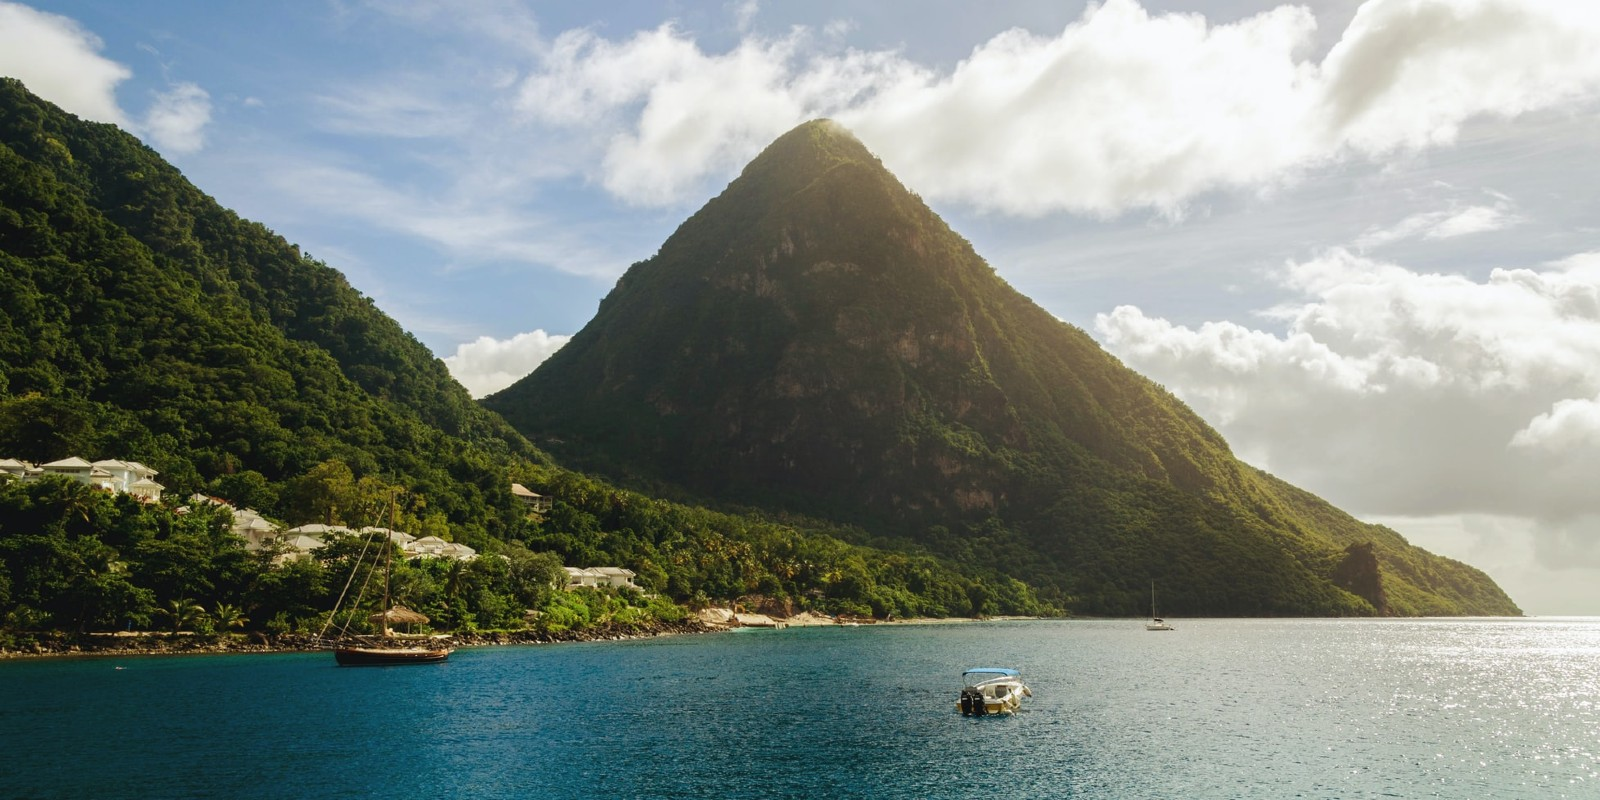 Travel blog: Can You Climb The Pitons In St Lucia? All The Ways You Can Explore The Famous Volcanos